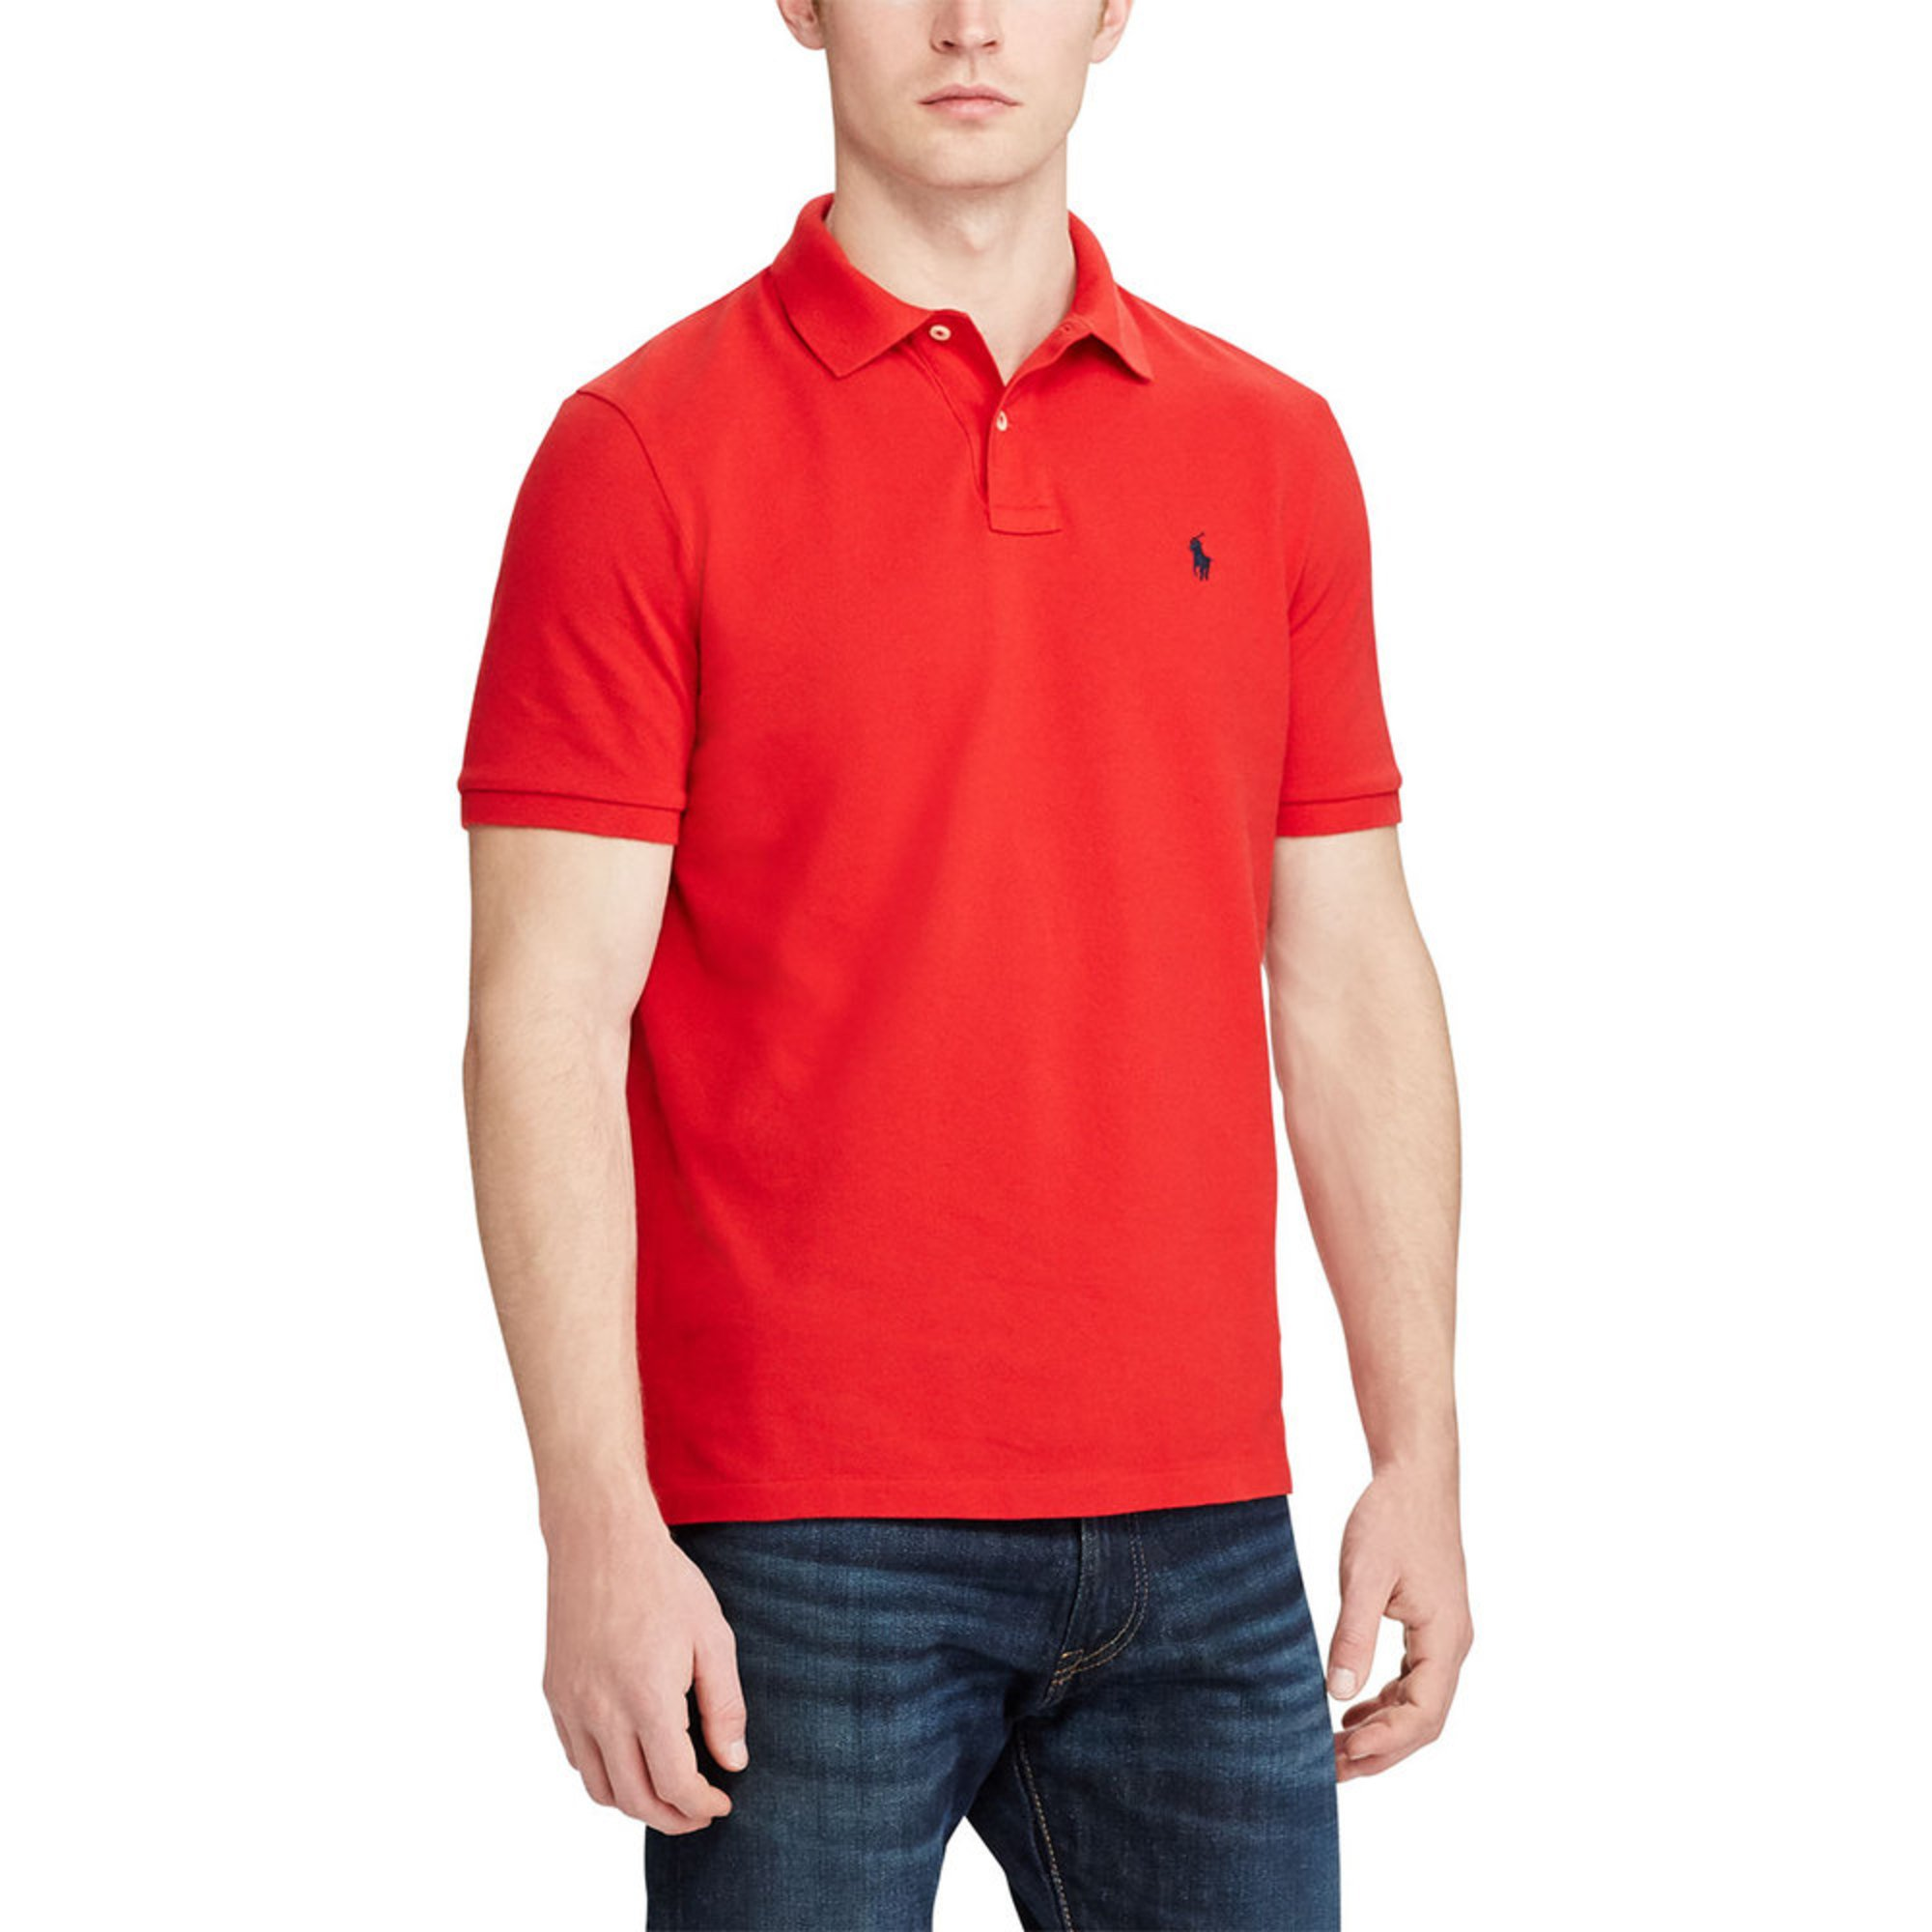 caa022cba Polo Ralph Lauren. Polo Ralph Lauren Men's Short Sleeve Mesh Classic Fit  Polo